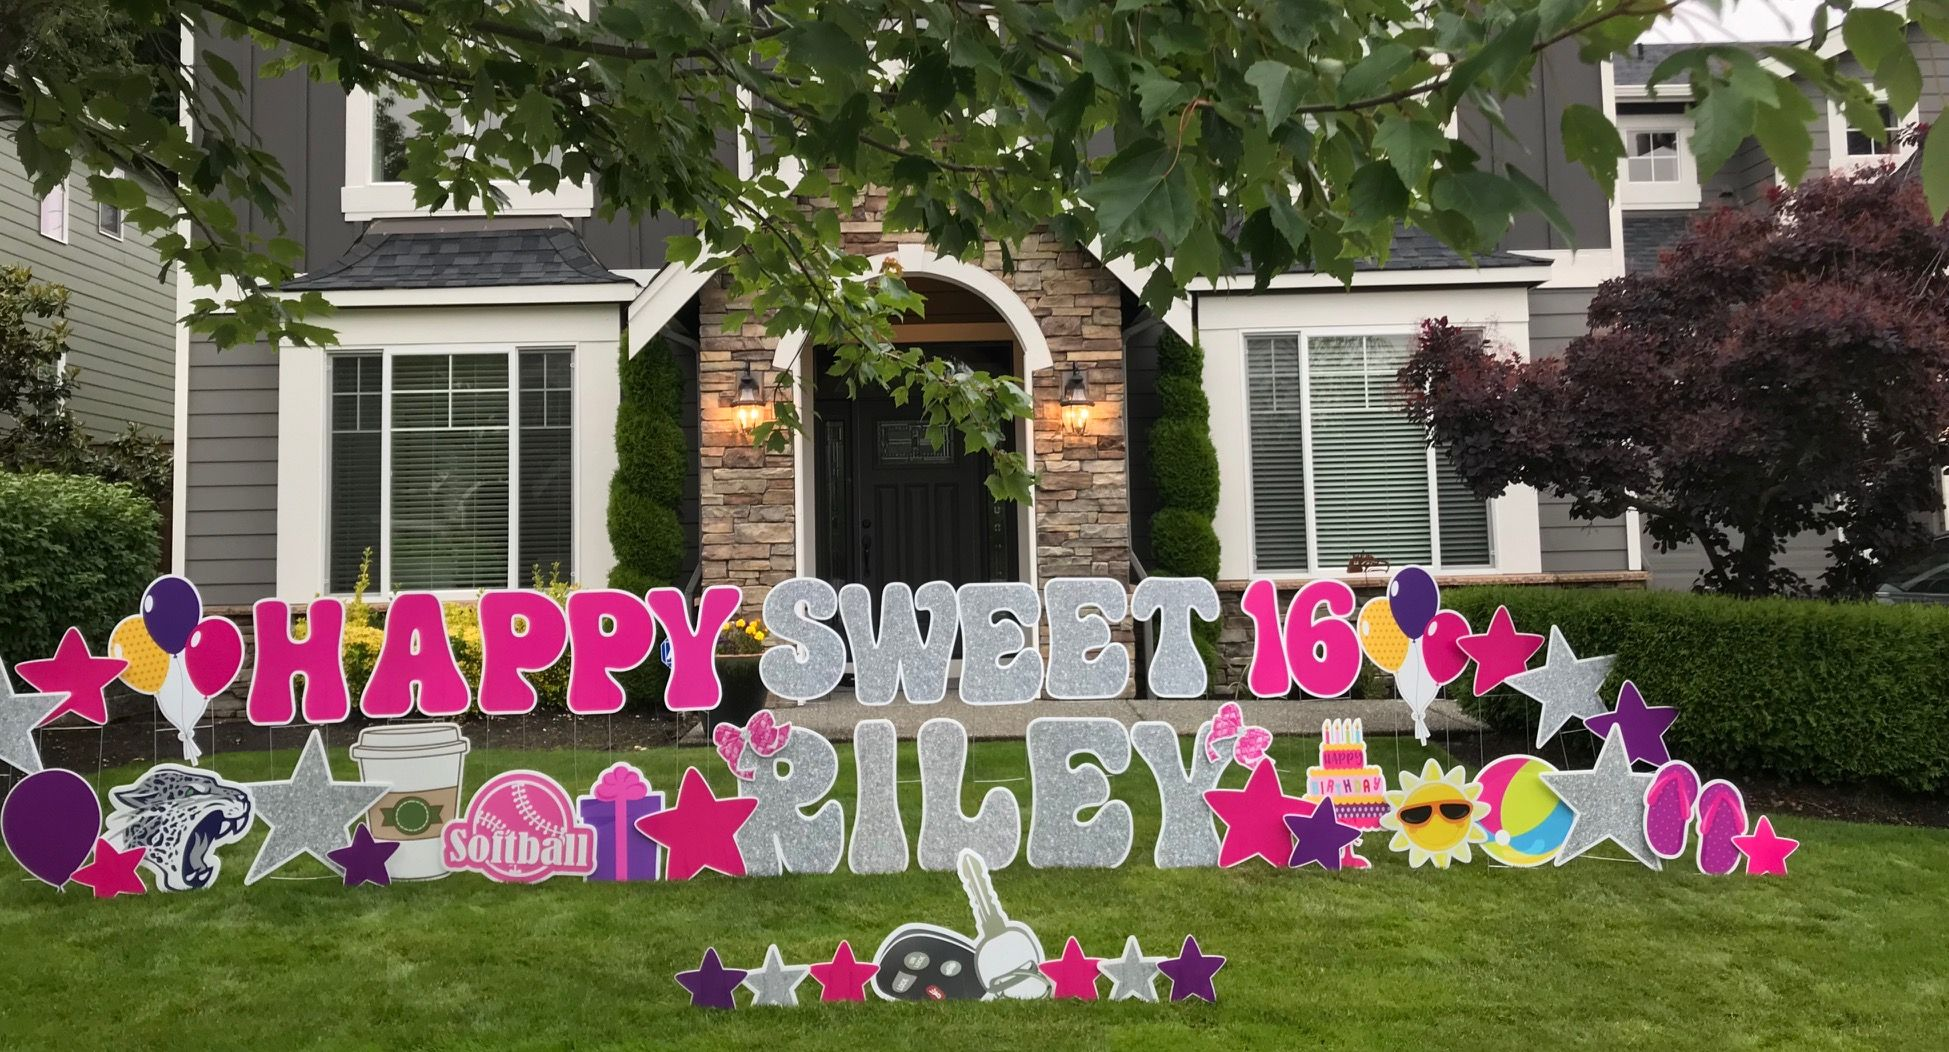 Our Birthday Yard Signs And Yard Art Make Awesome Sweet 16 Birthday Party Decorations They Birthday Yard Signs Happy Birthday Sweet 16 Sweet Sixteen Birthday